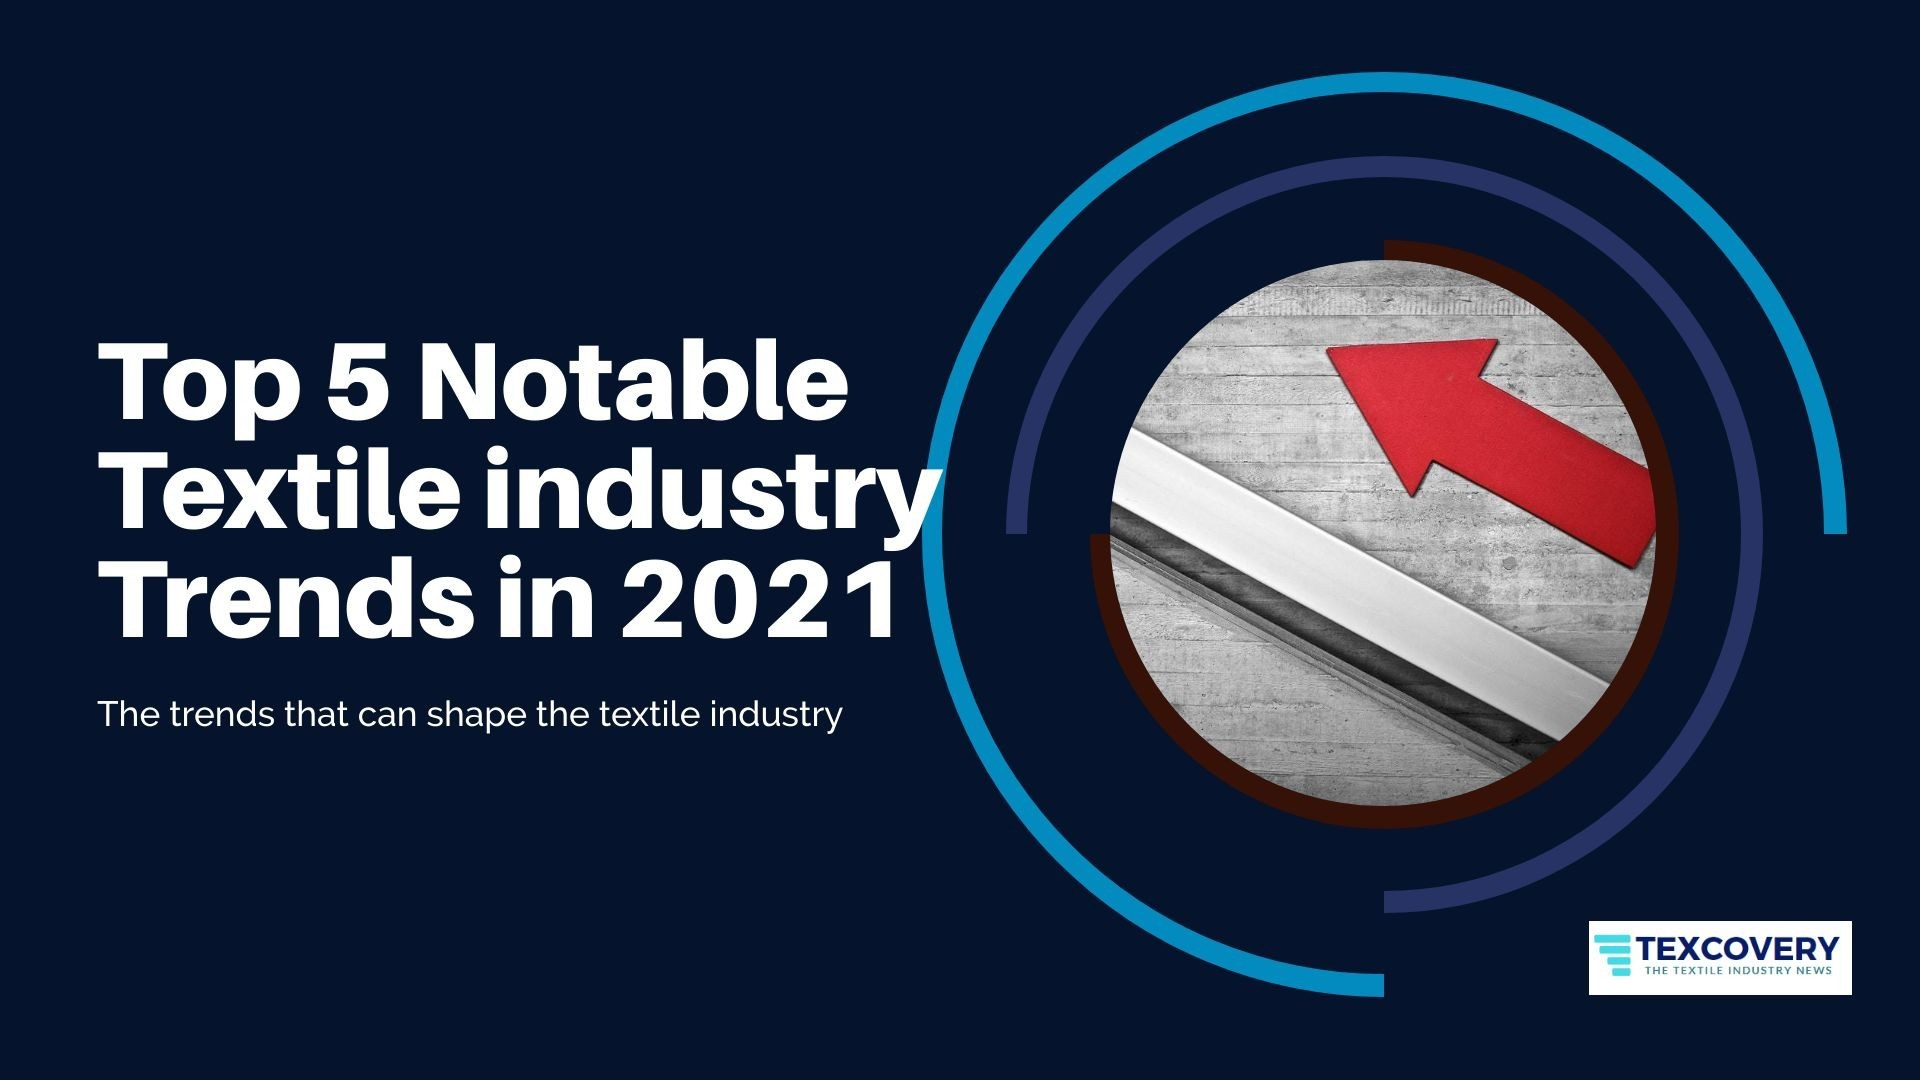 Top 5 Notable Textile industry Trends in 2021